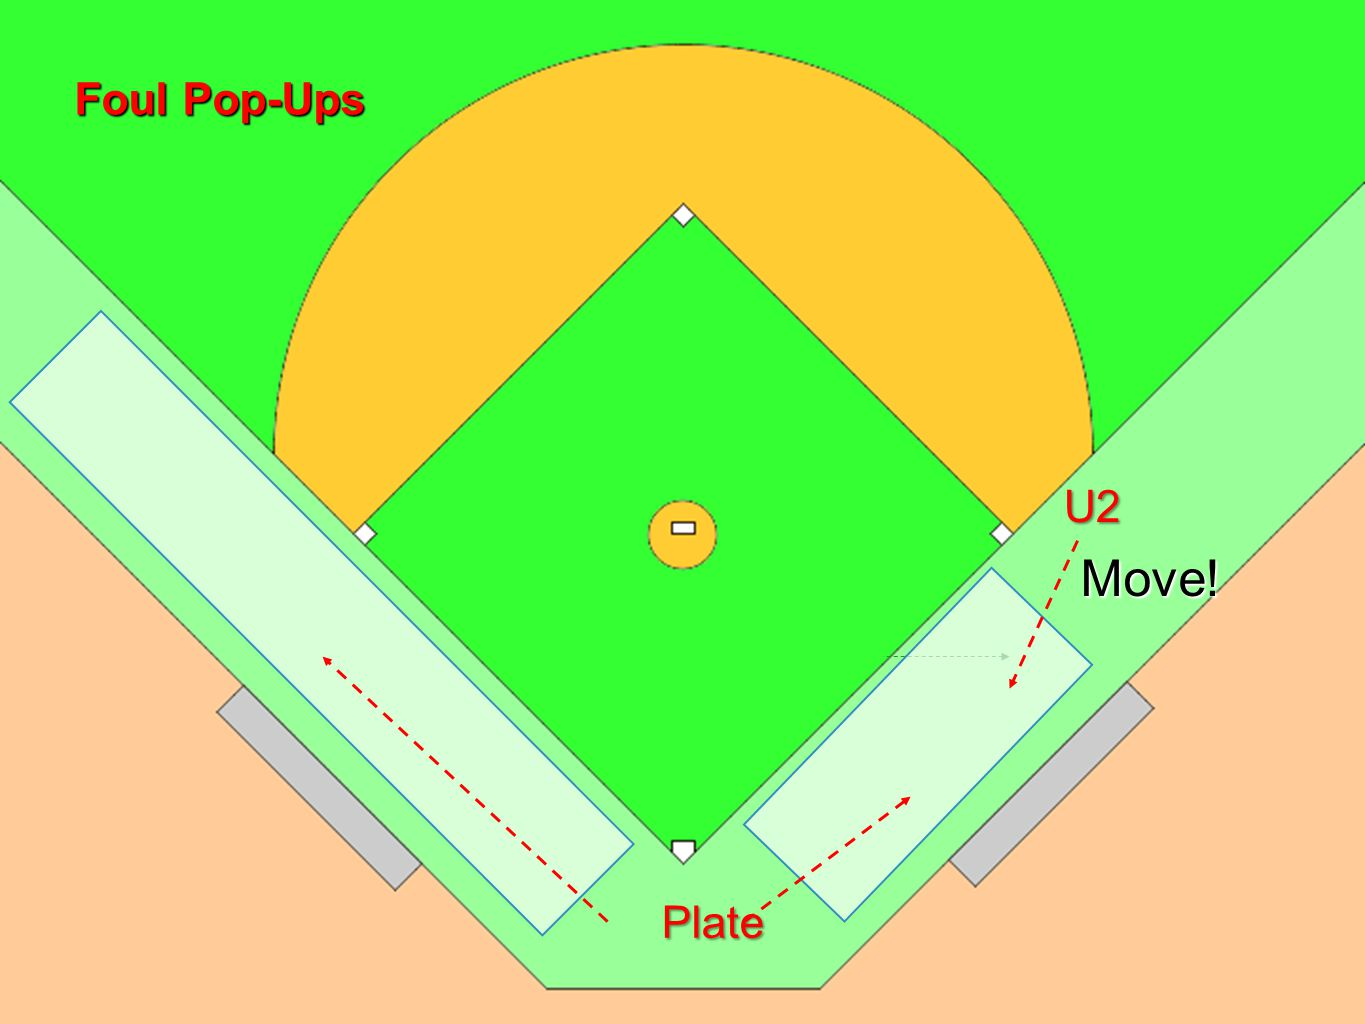 Foul Pop ups When U2 is in Position A, both umpires should cover foul pop-ups in the 1 st base dugout area.